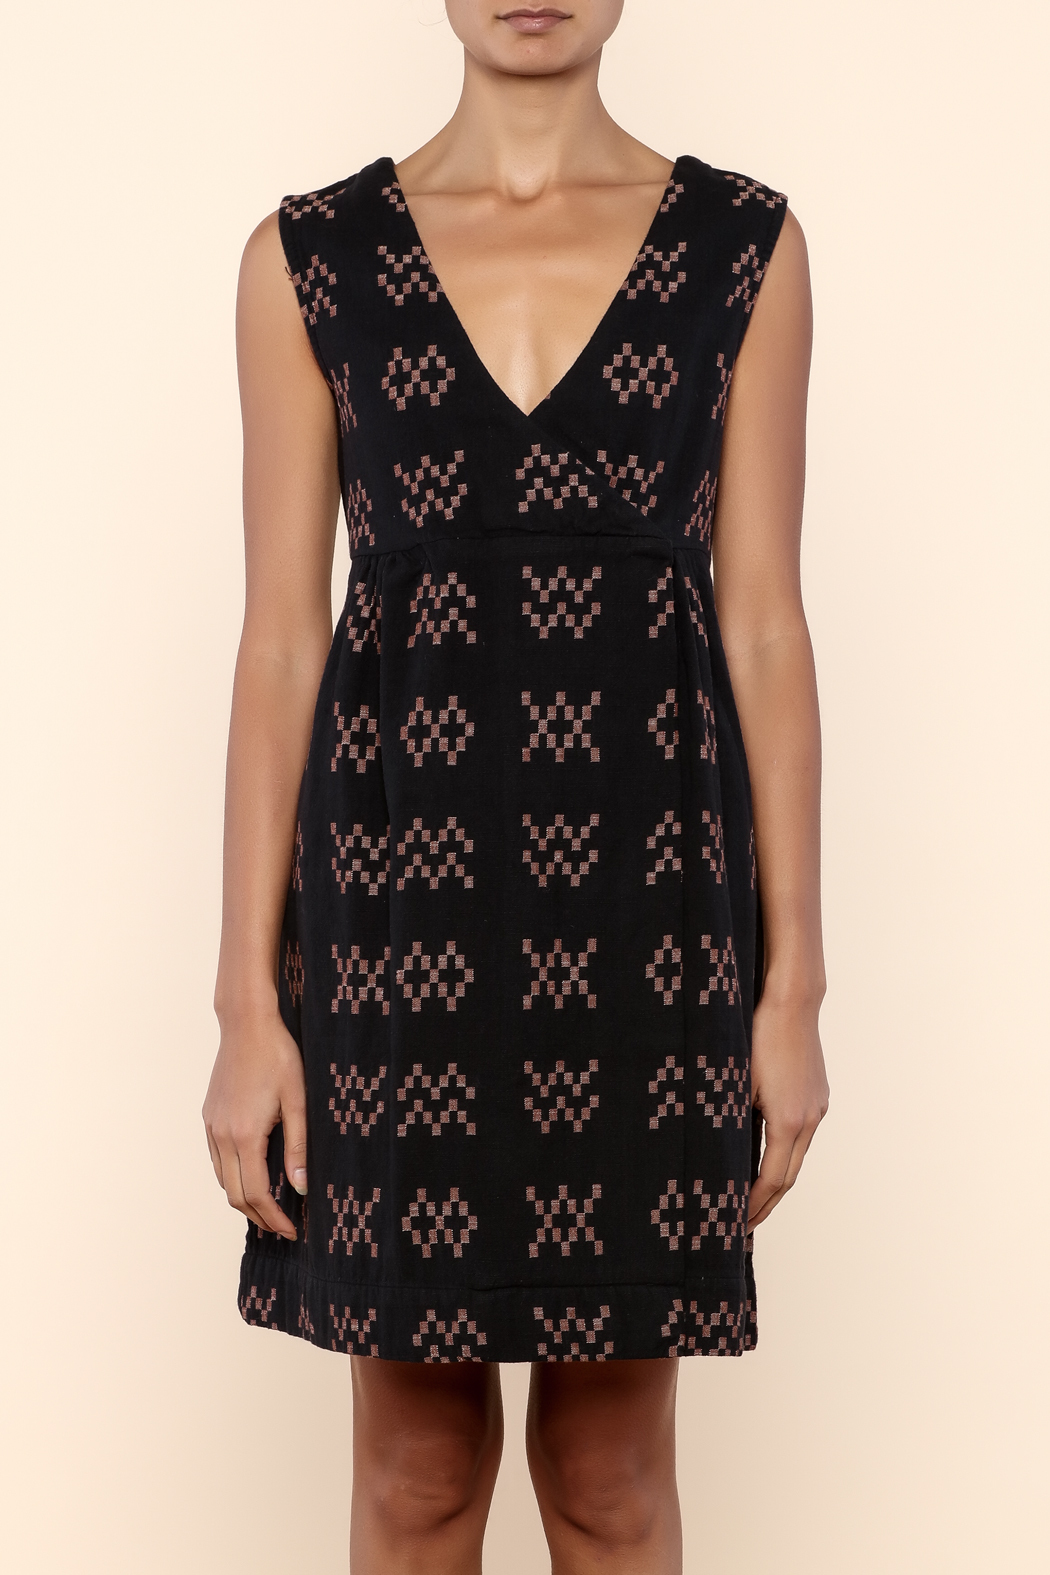 Ace & Jig Bedford Dress - Side Cropped Image